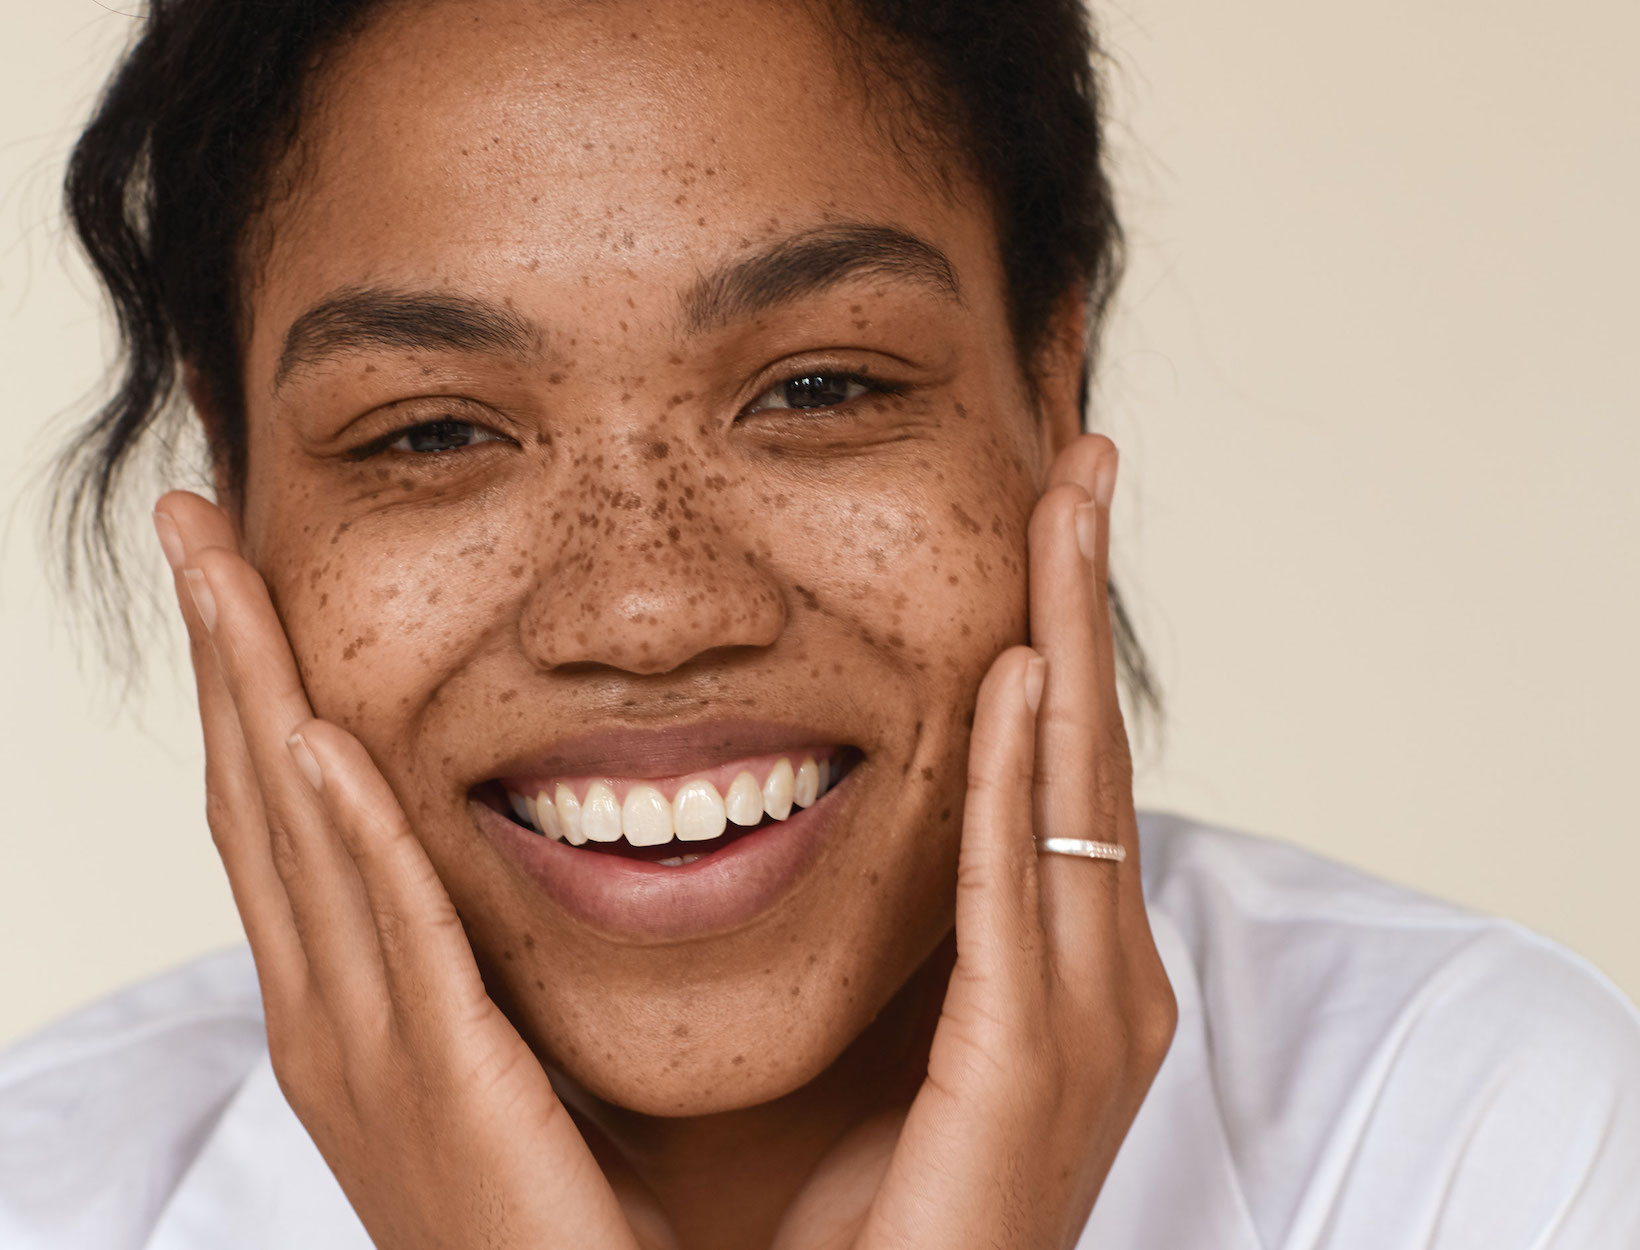 We're Obsessed: 3 Devices for Lifting, Sculpting, and Amping Up Glow at Home